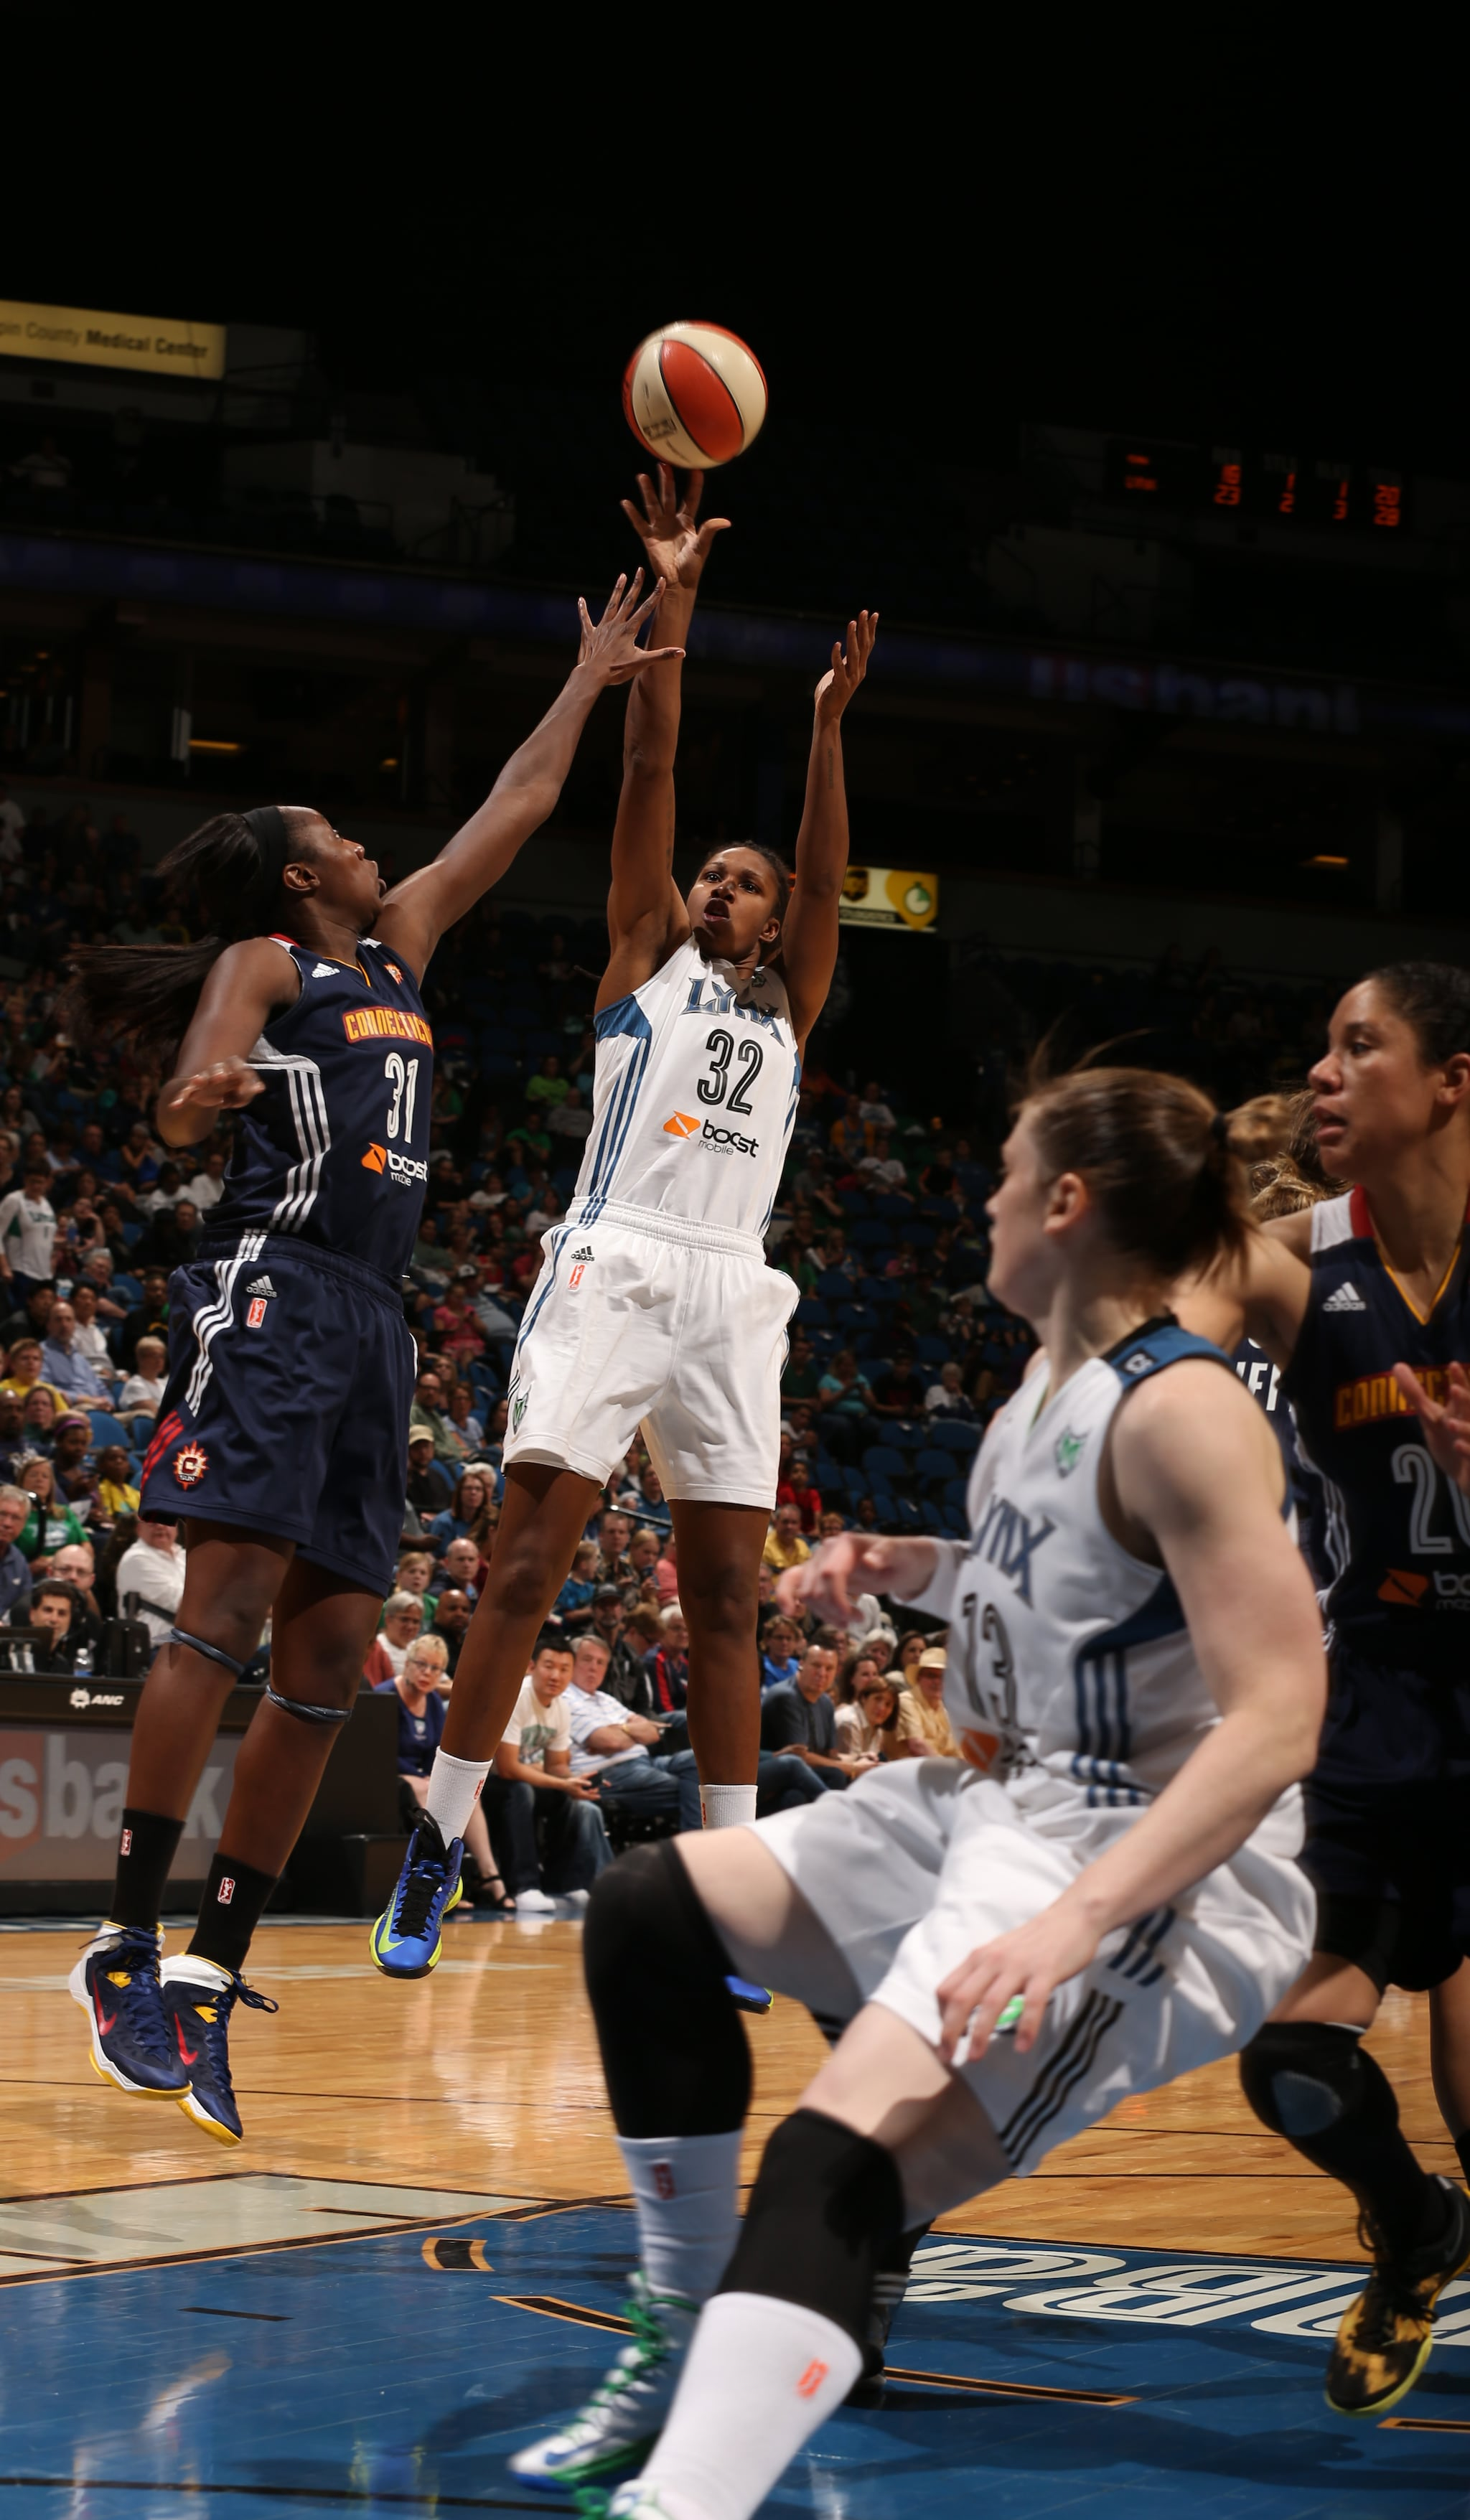 2013's Home-Opener: Lynx forward Rebekkah Brunson knocks down a jumper for two of her 12 points on the night. The Lynx defeated the Connecticut Sun 90-74.